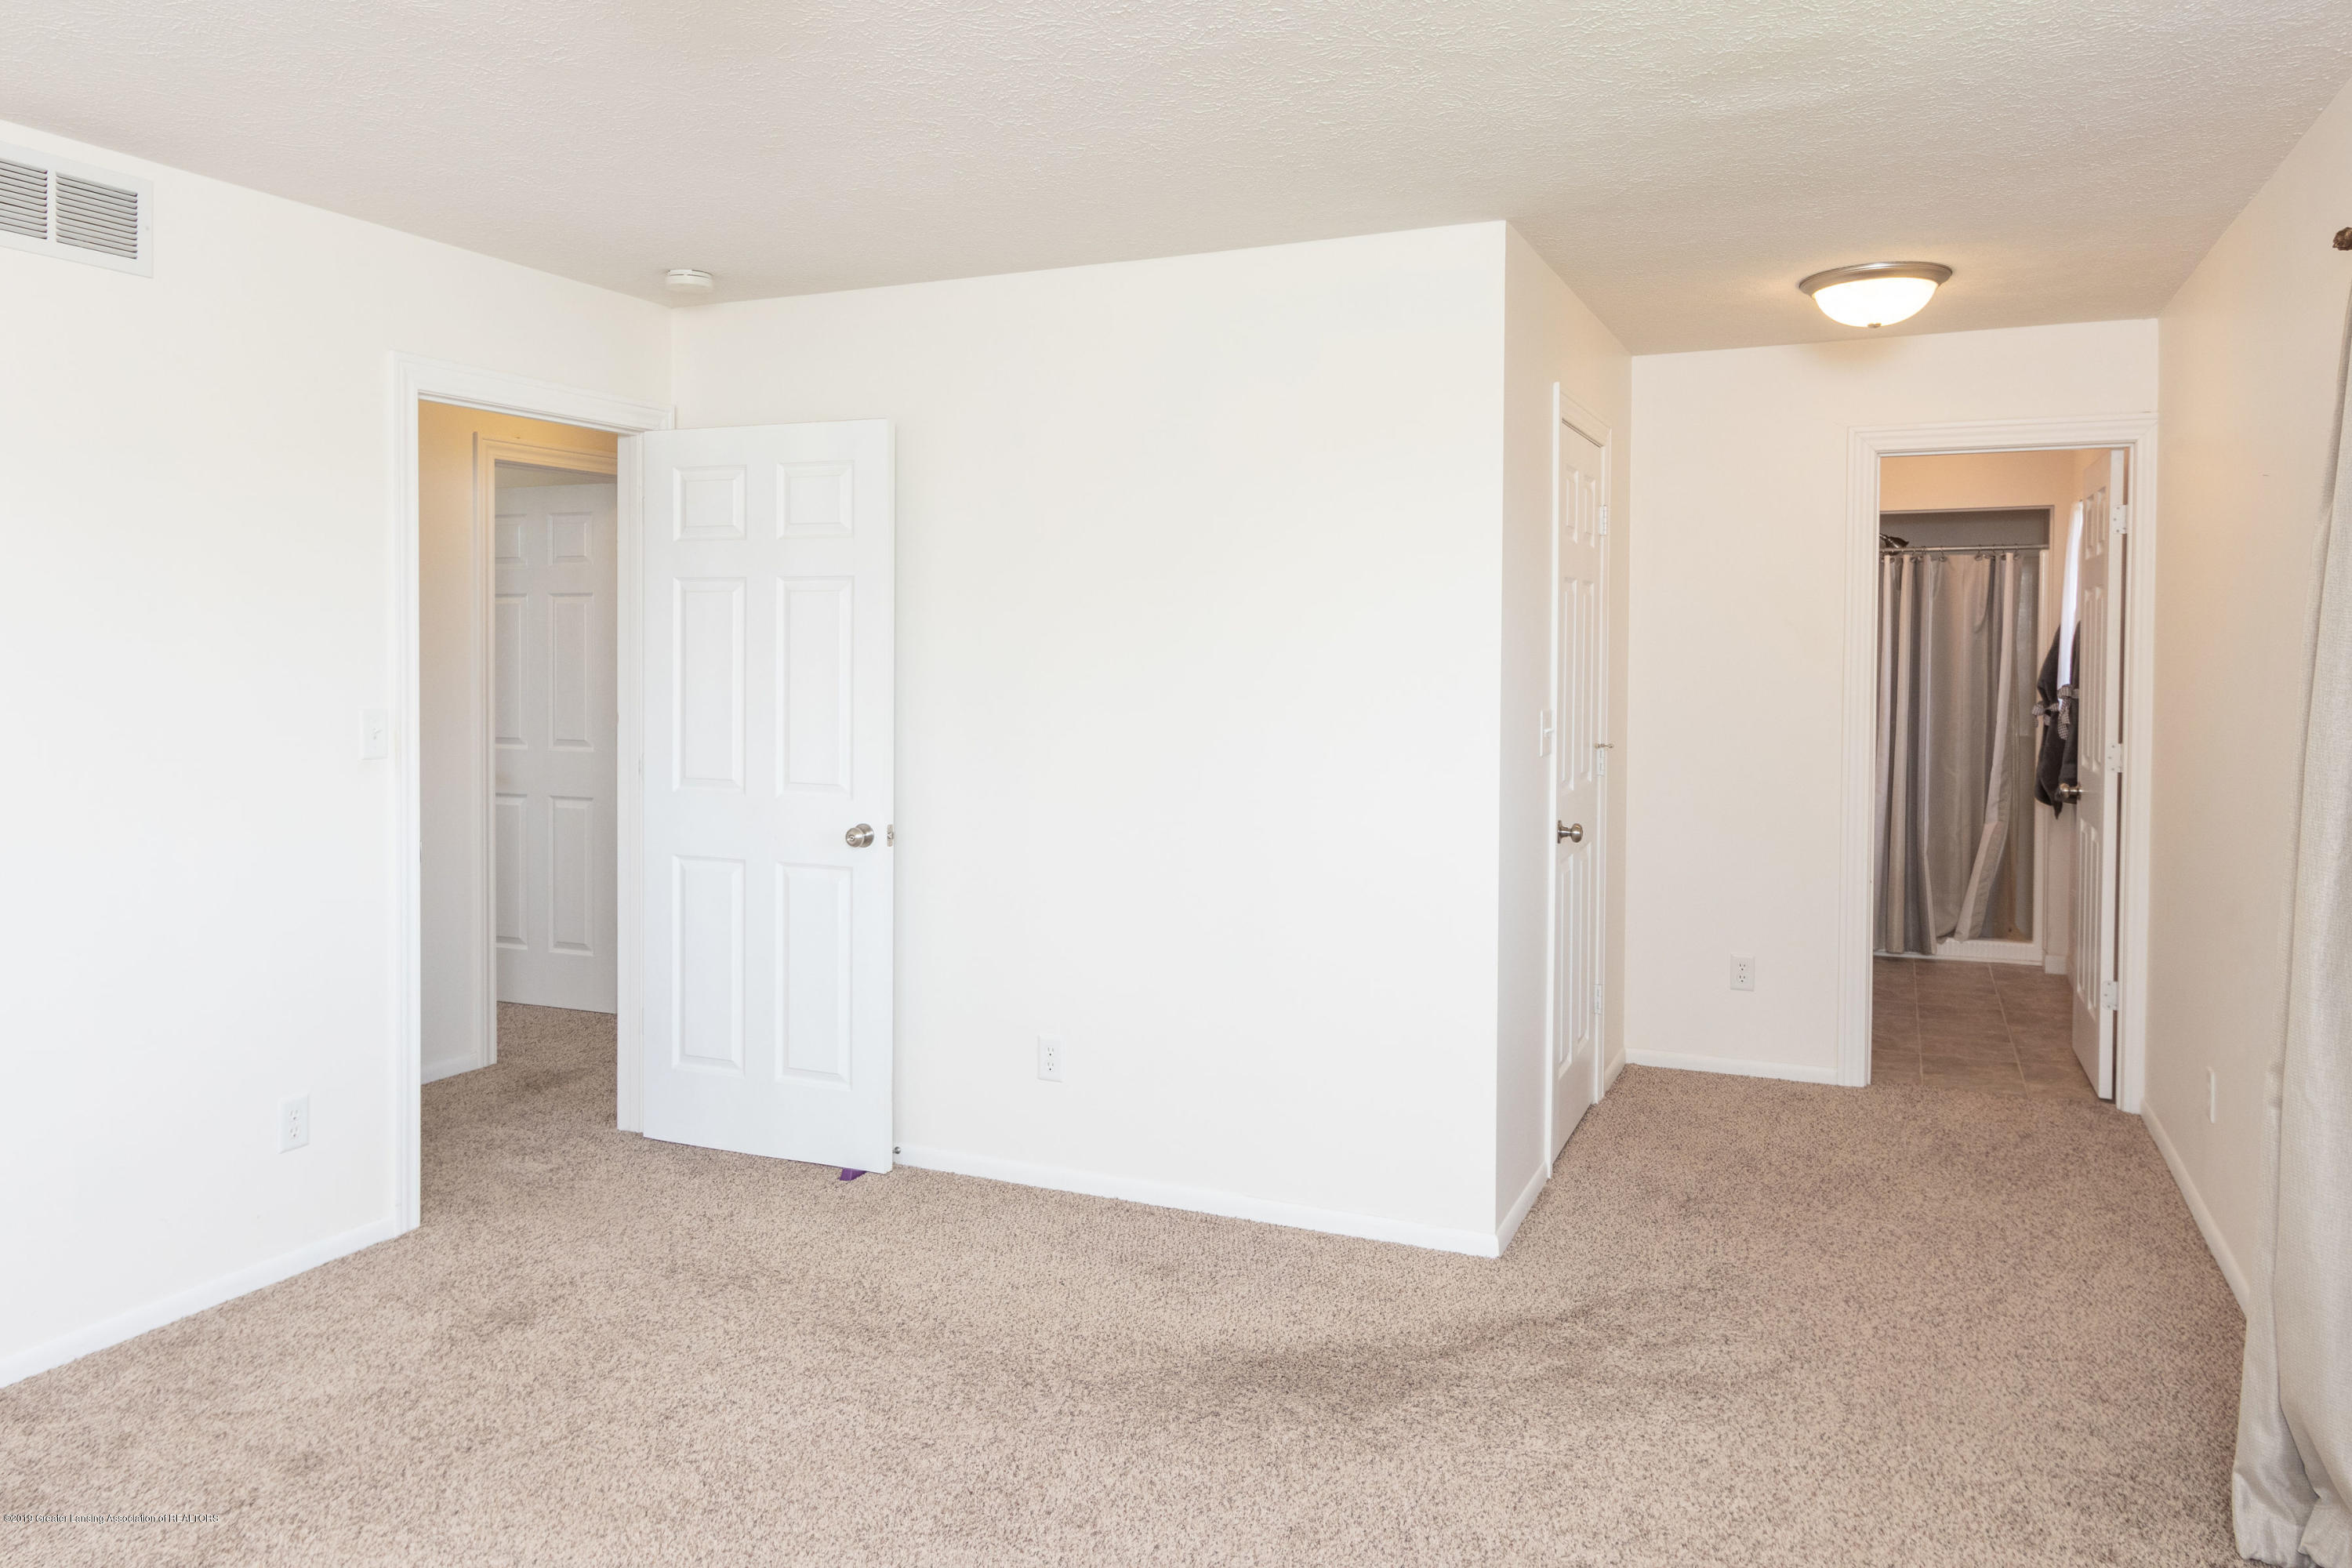 415 Holt Rd - Walk-in closet area - 29